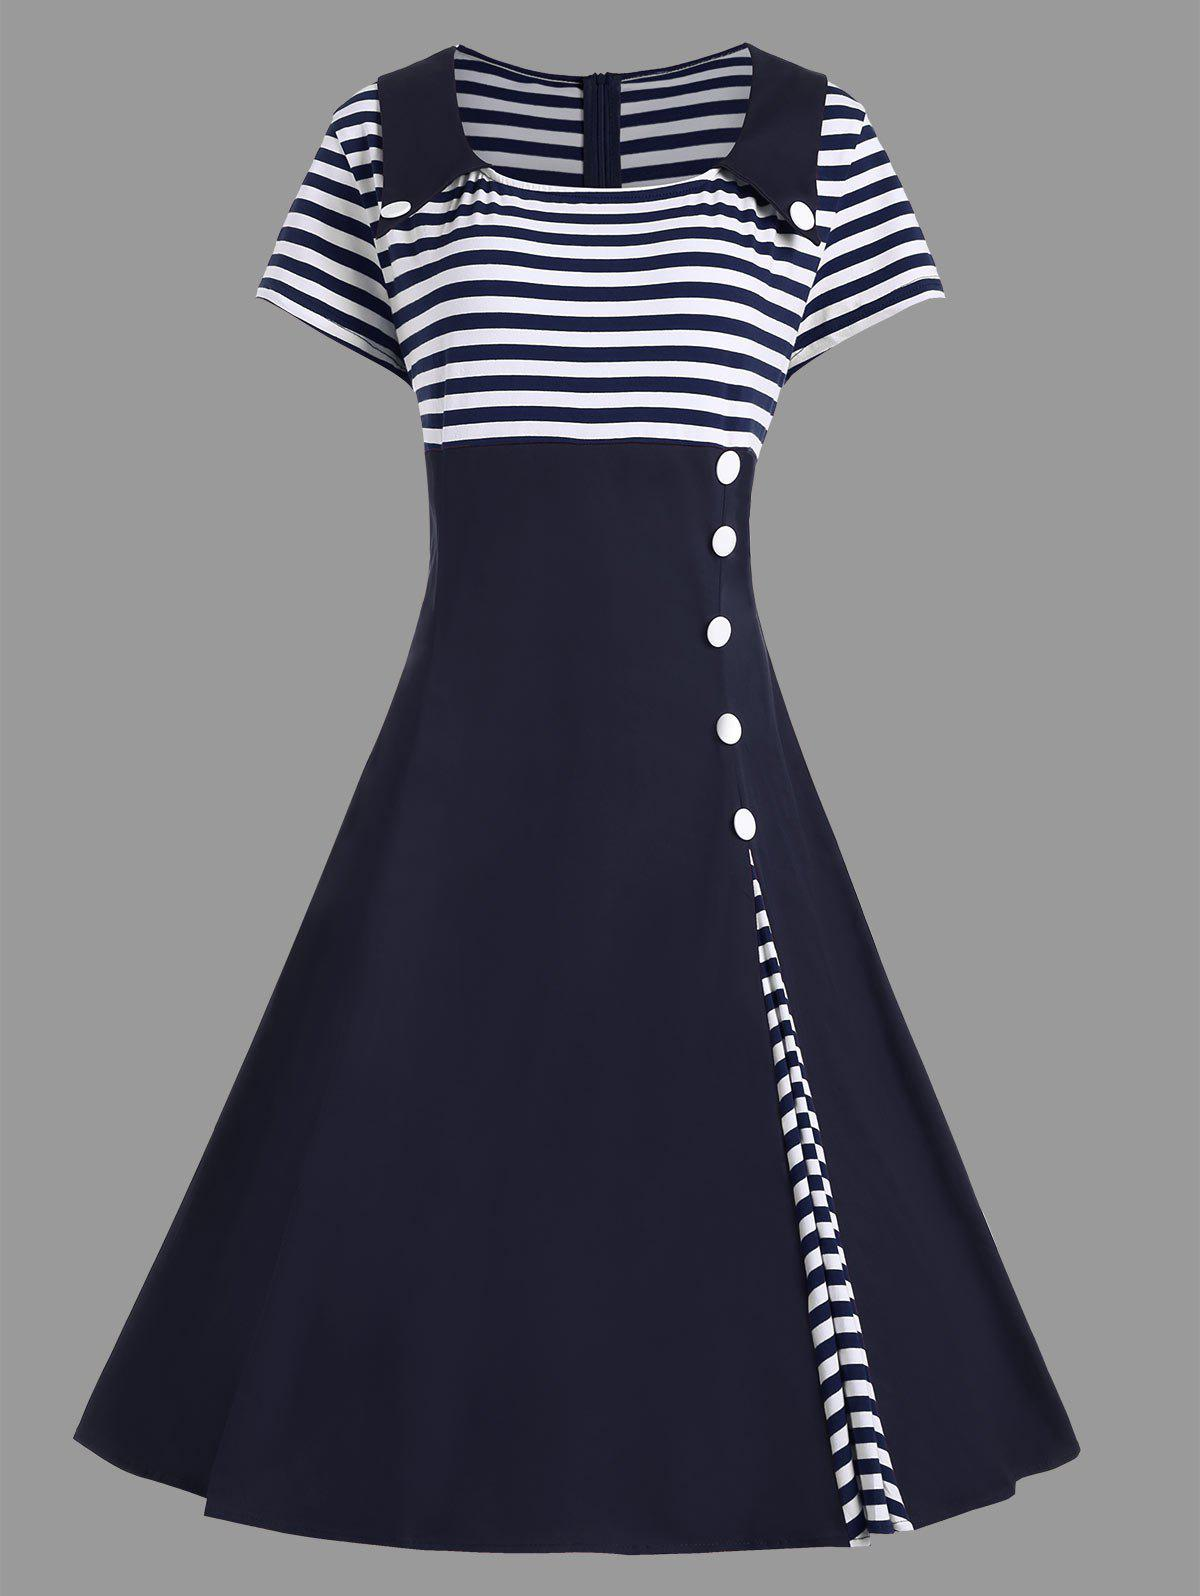 Striped Midi Plus Size Vintage Skater DressWOMEN<br><br>Size: 2XL; Color: PURPLISH BLUE; Style: Vintage; Material: Polyester; Silhouette: A-Line; Dresses Length: Mid-Calf; Neckline: Square Collar; Sleeve Length: Short Sleeves; Pattern Type: Striped; With Belt: No; Season: Summer; Weight: 0.4700kg; Package Contents: 1 x Dress;